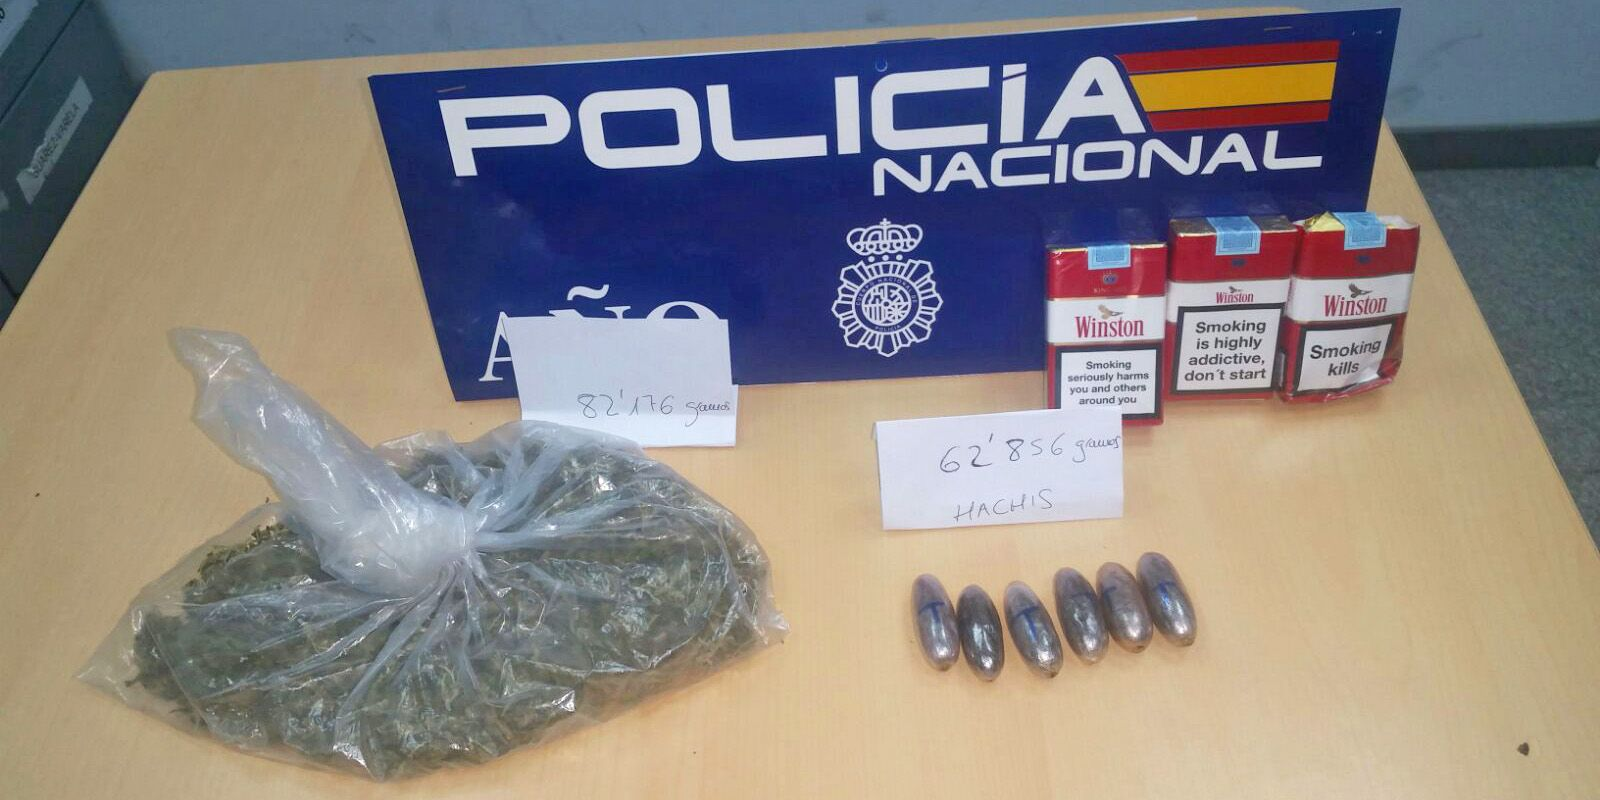 policia-hachis